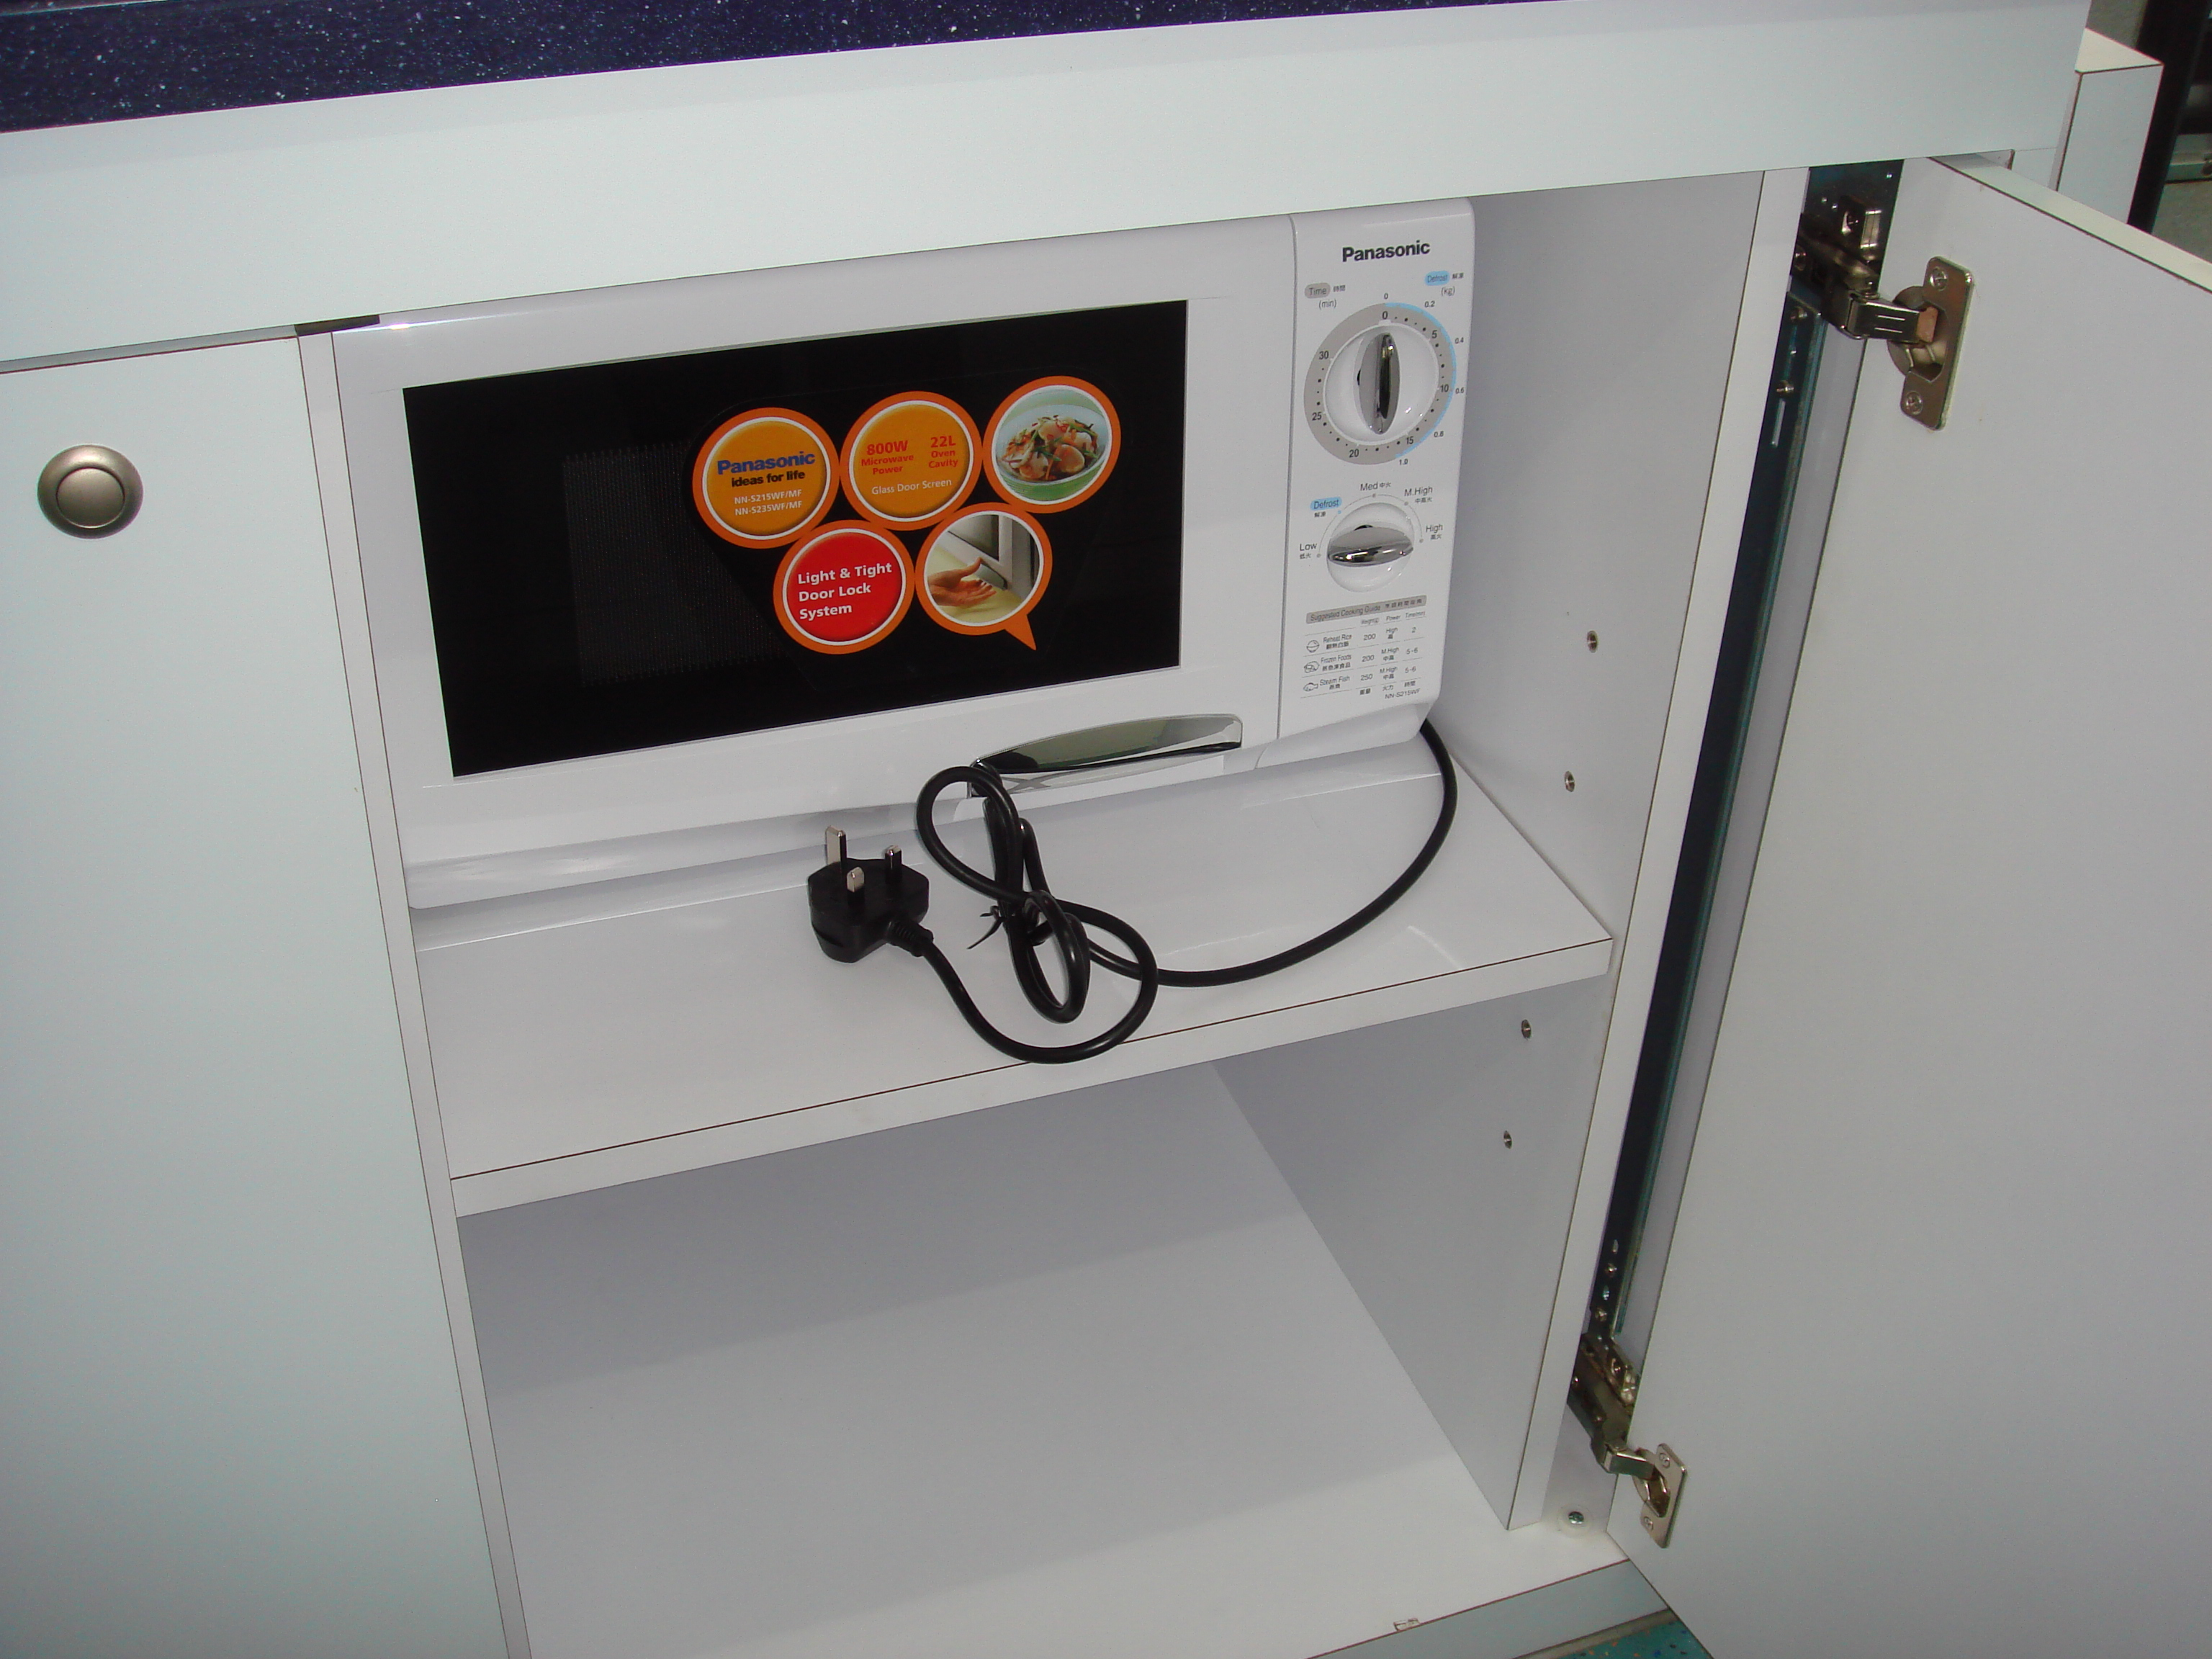 A microwave oven for making agarose gel